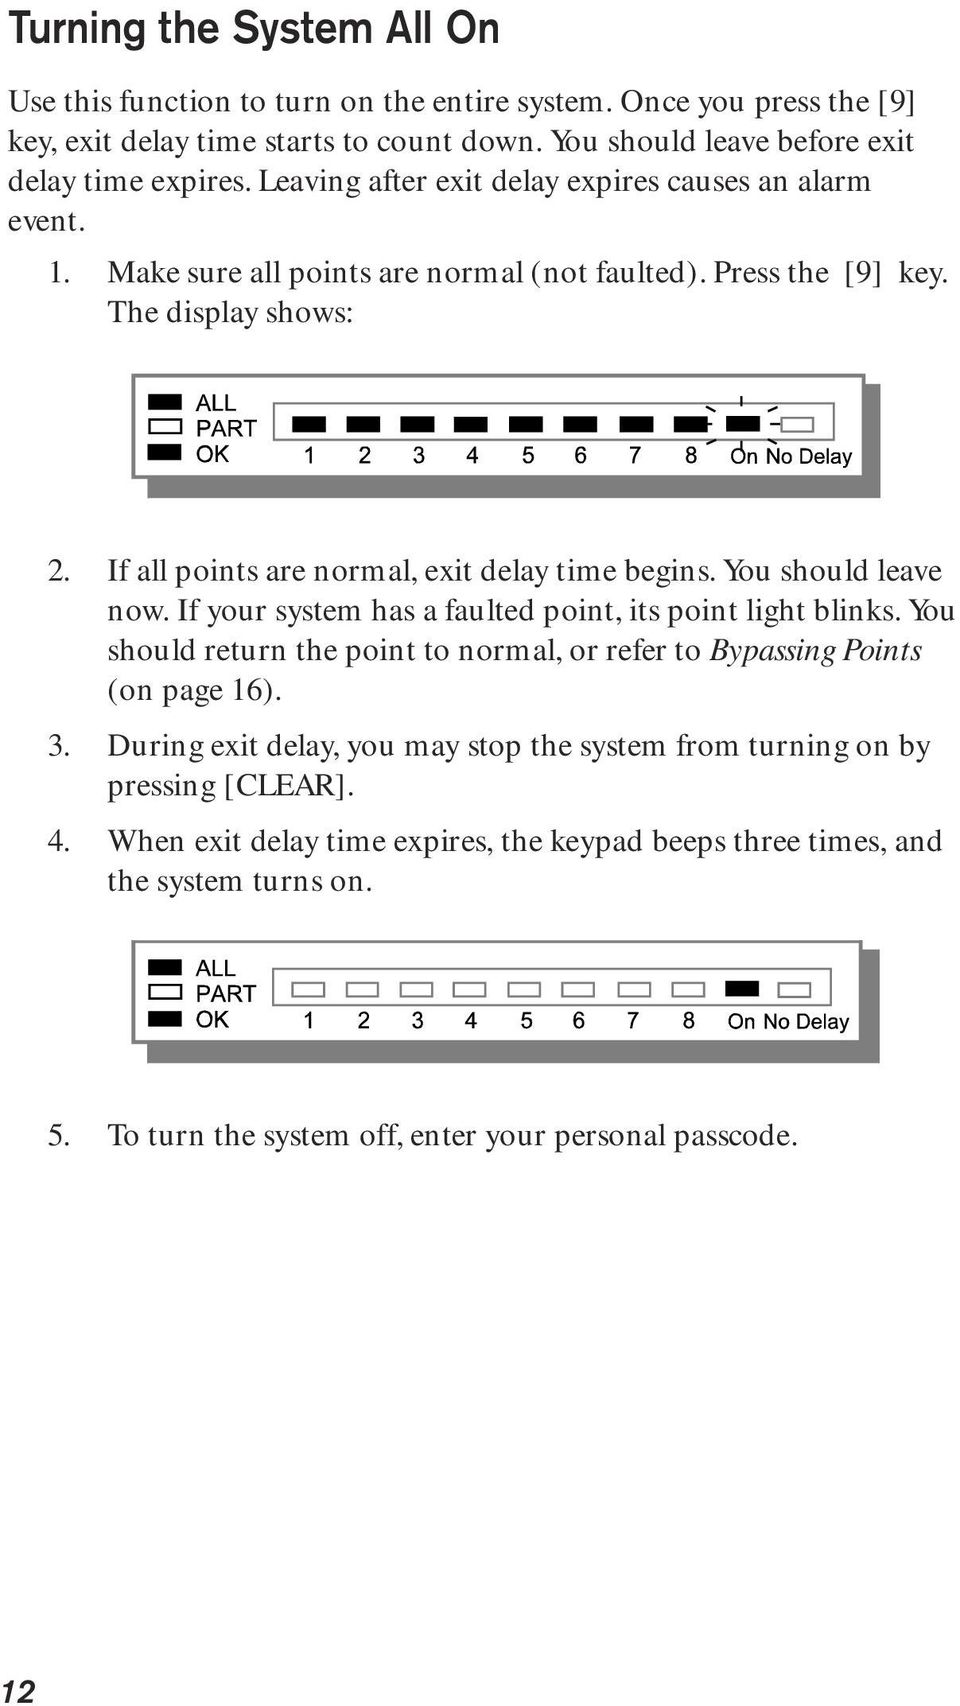 Should You Leave Salt Lamps On All The Time : User s Guide. Security Systems D220 - PDF